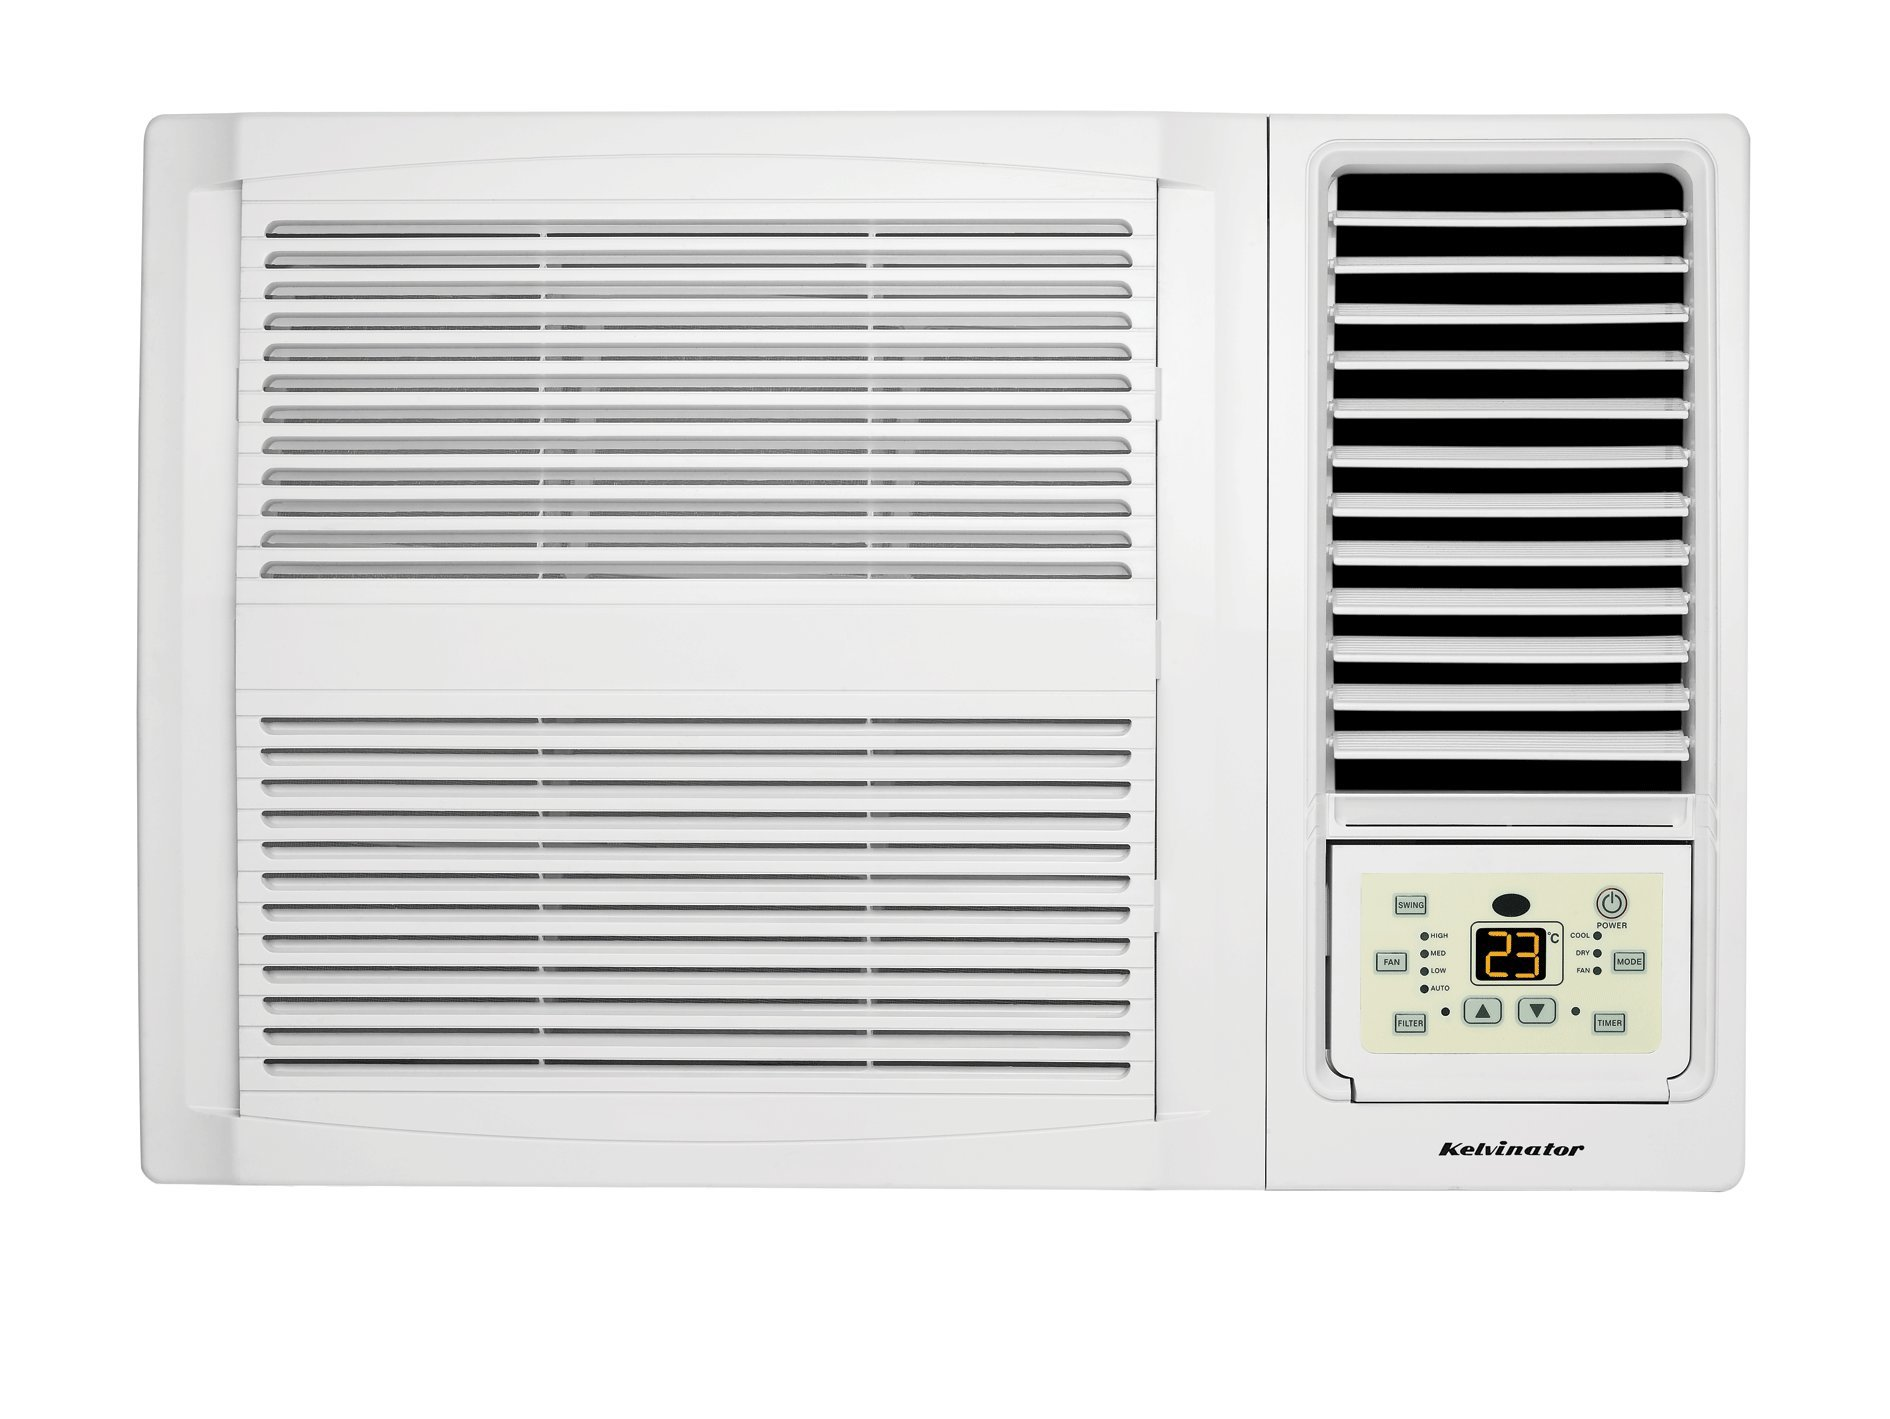 Kelvinator KWH39CRE 3.9kW Window Box Air Conditioner (Cooling only) - FREE Delivery & Price Match* image